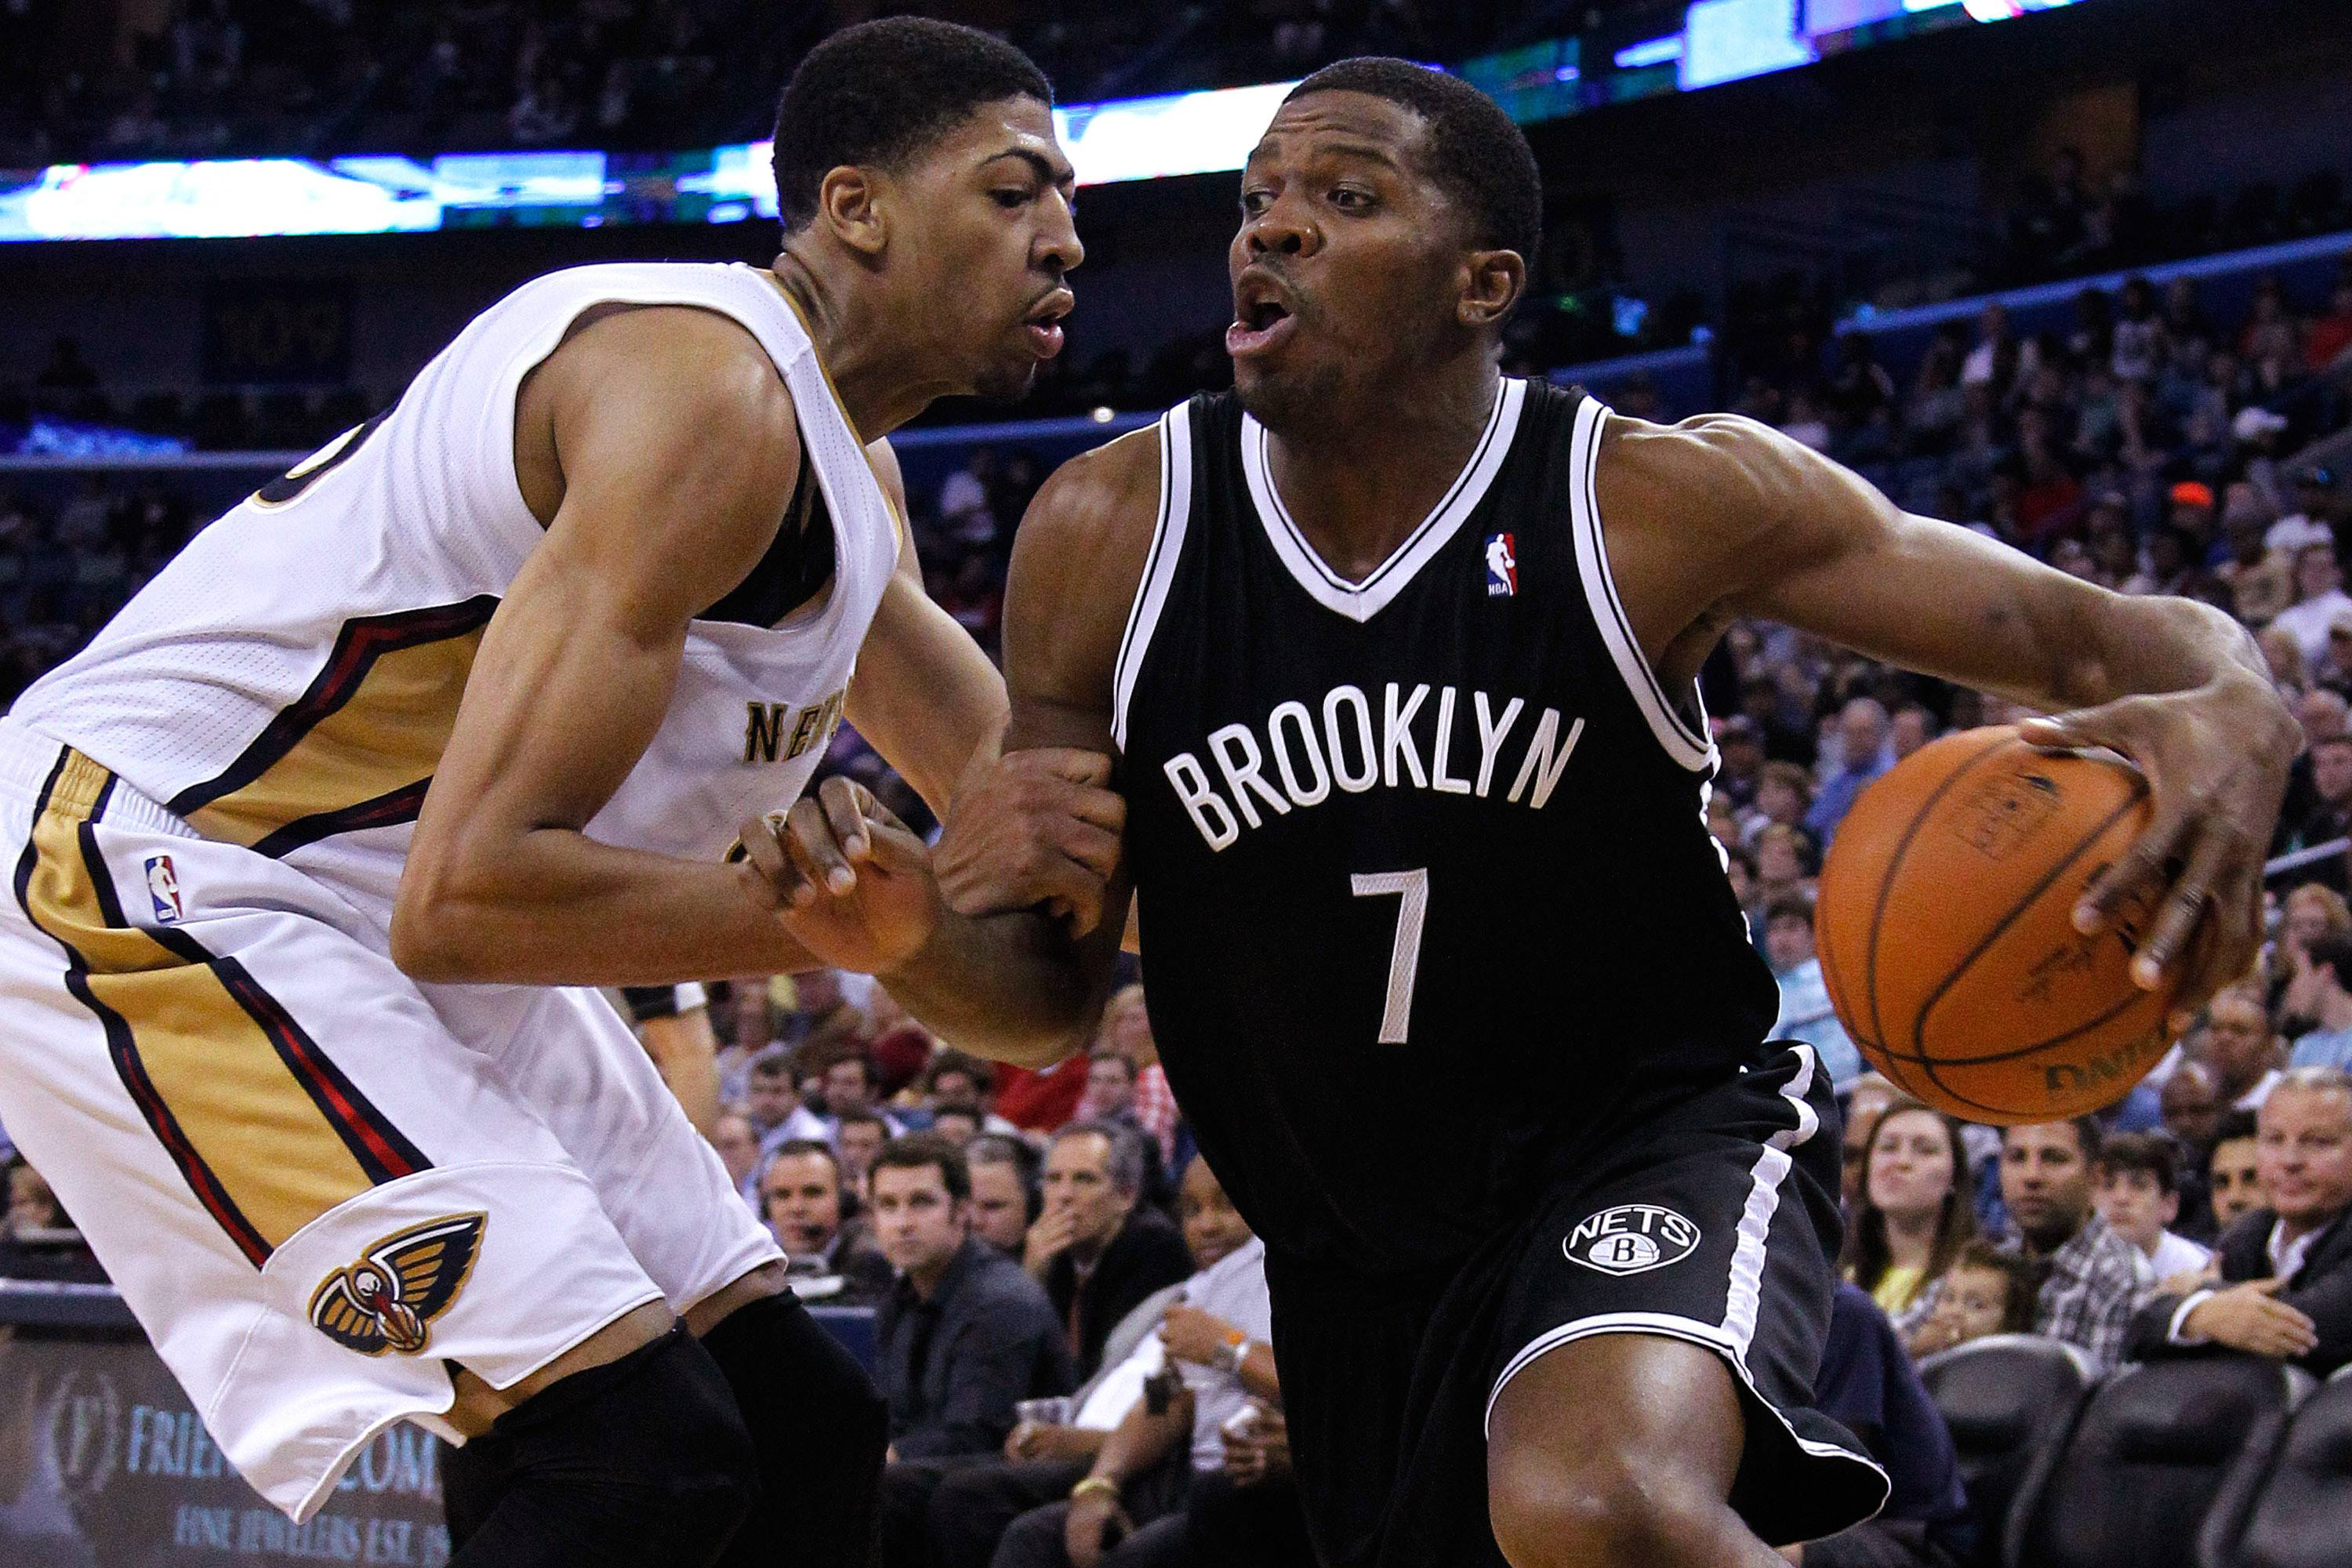 Brooklyn Nets guard Joe Johnson (7) drives against New Orleans Pelicans forward Anthony Davis, left, during the first half of an NBA basketball game in New Orleans, Monday, March 24, 2014. The Pelicans won 109-104.